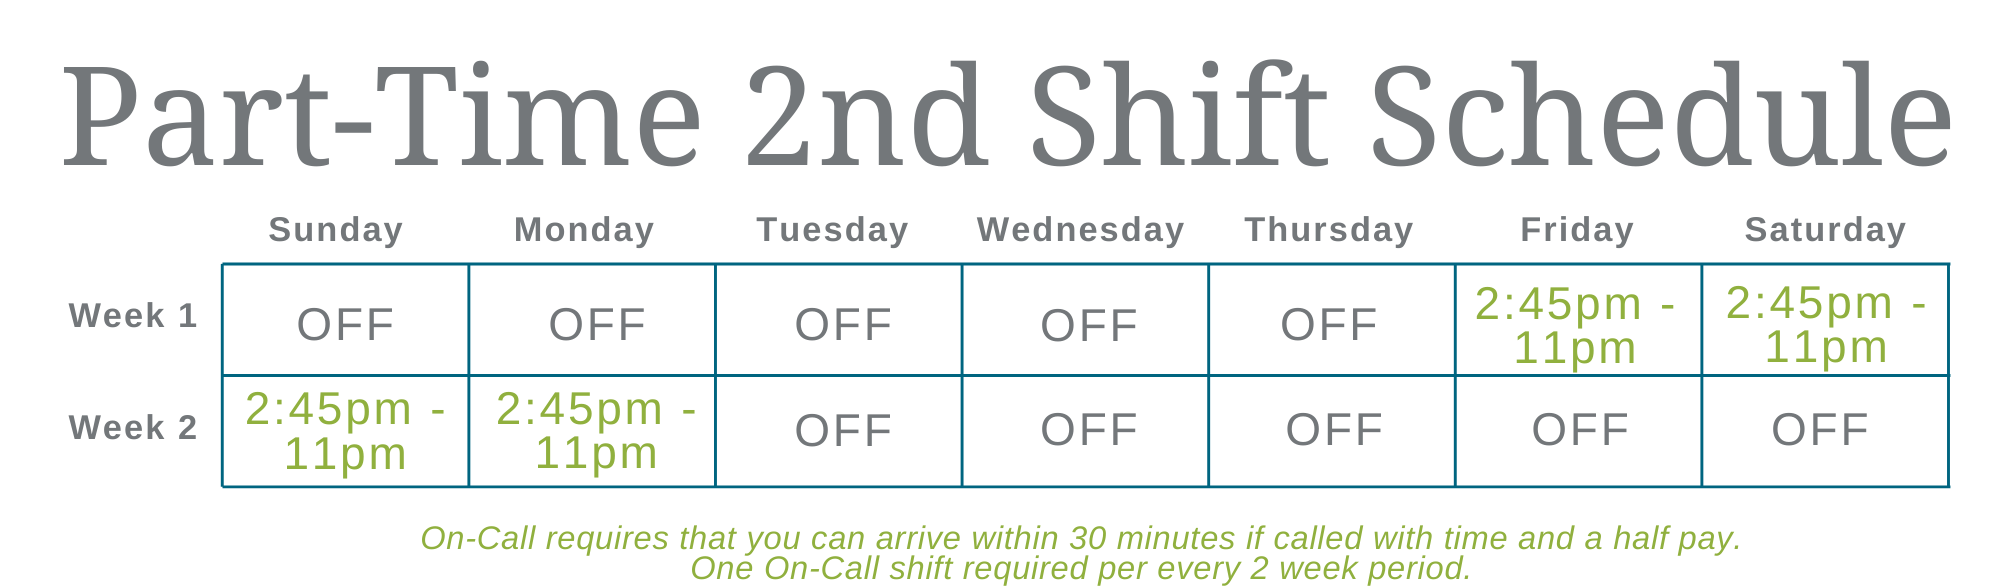 Copy of Schedule 3rd Shift (12)